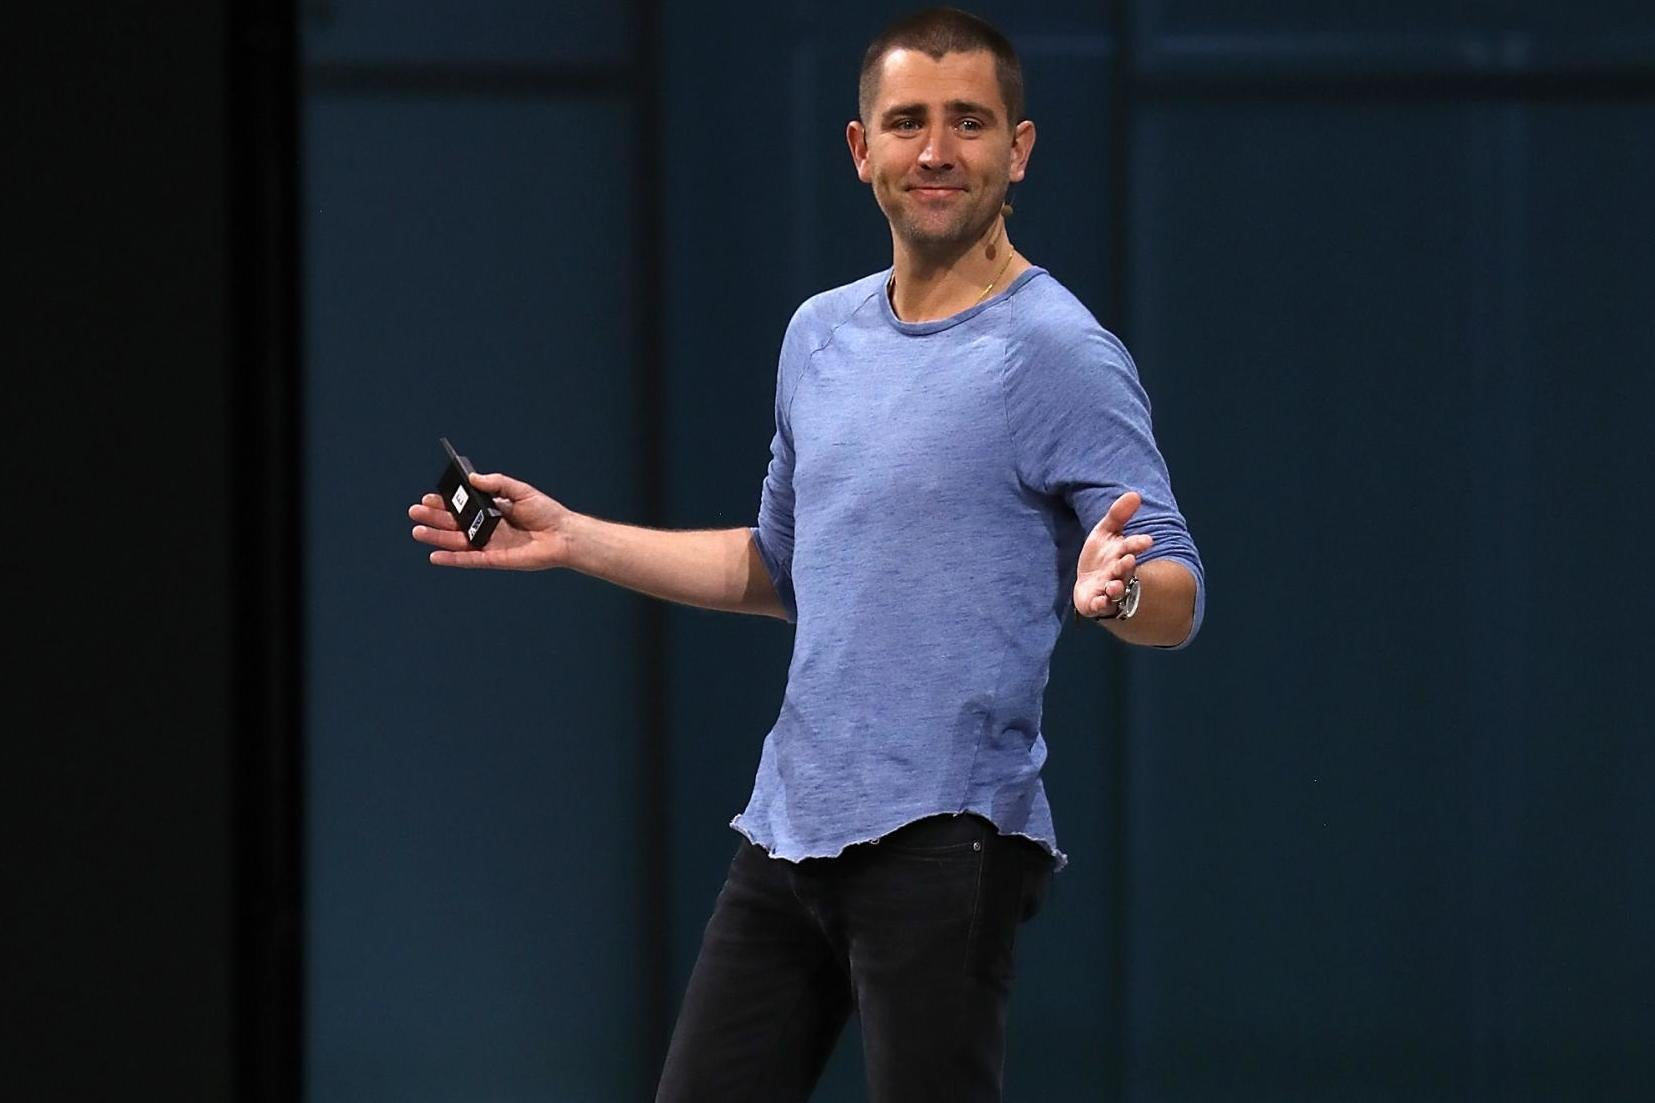 Chris Cox leaving Facebook: One of Mark Zuckerberg's closest advisers among executives departing company